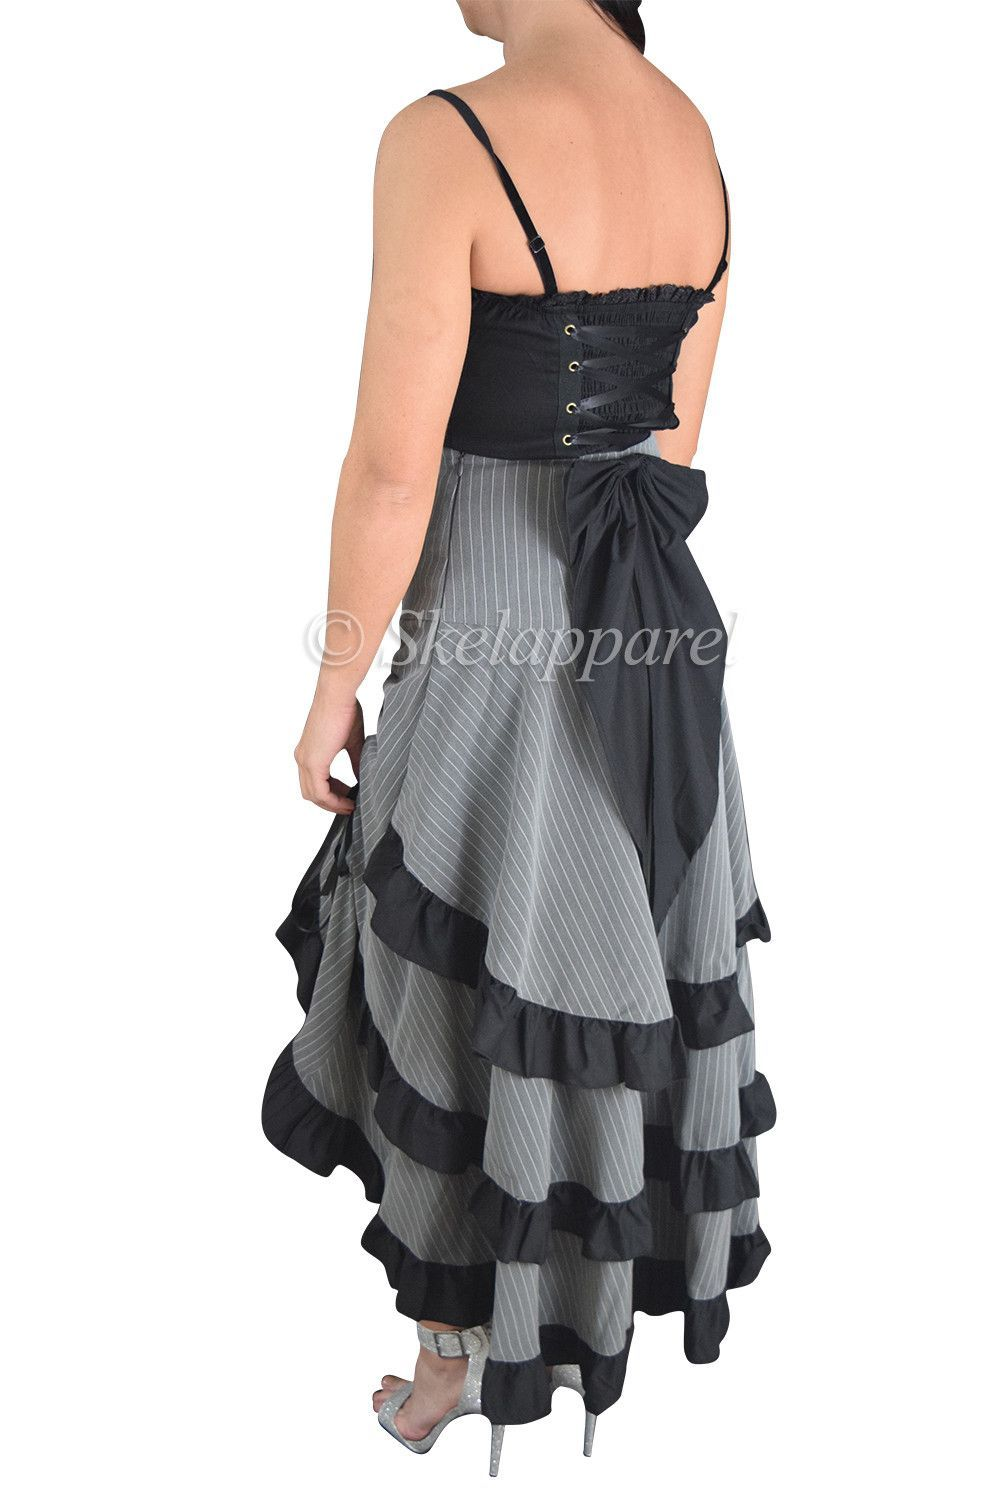 eac76b7e68 This gorgeous high waist-banded skirt features an High-Low style with an  ankle-length tail at the back with three tiers of ruffles